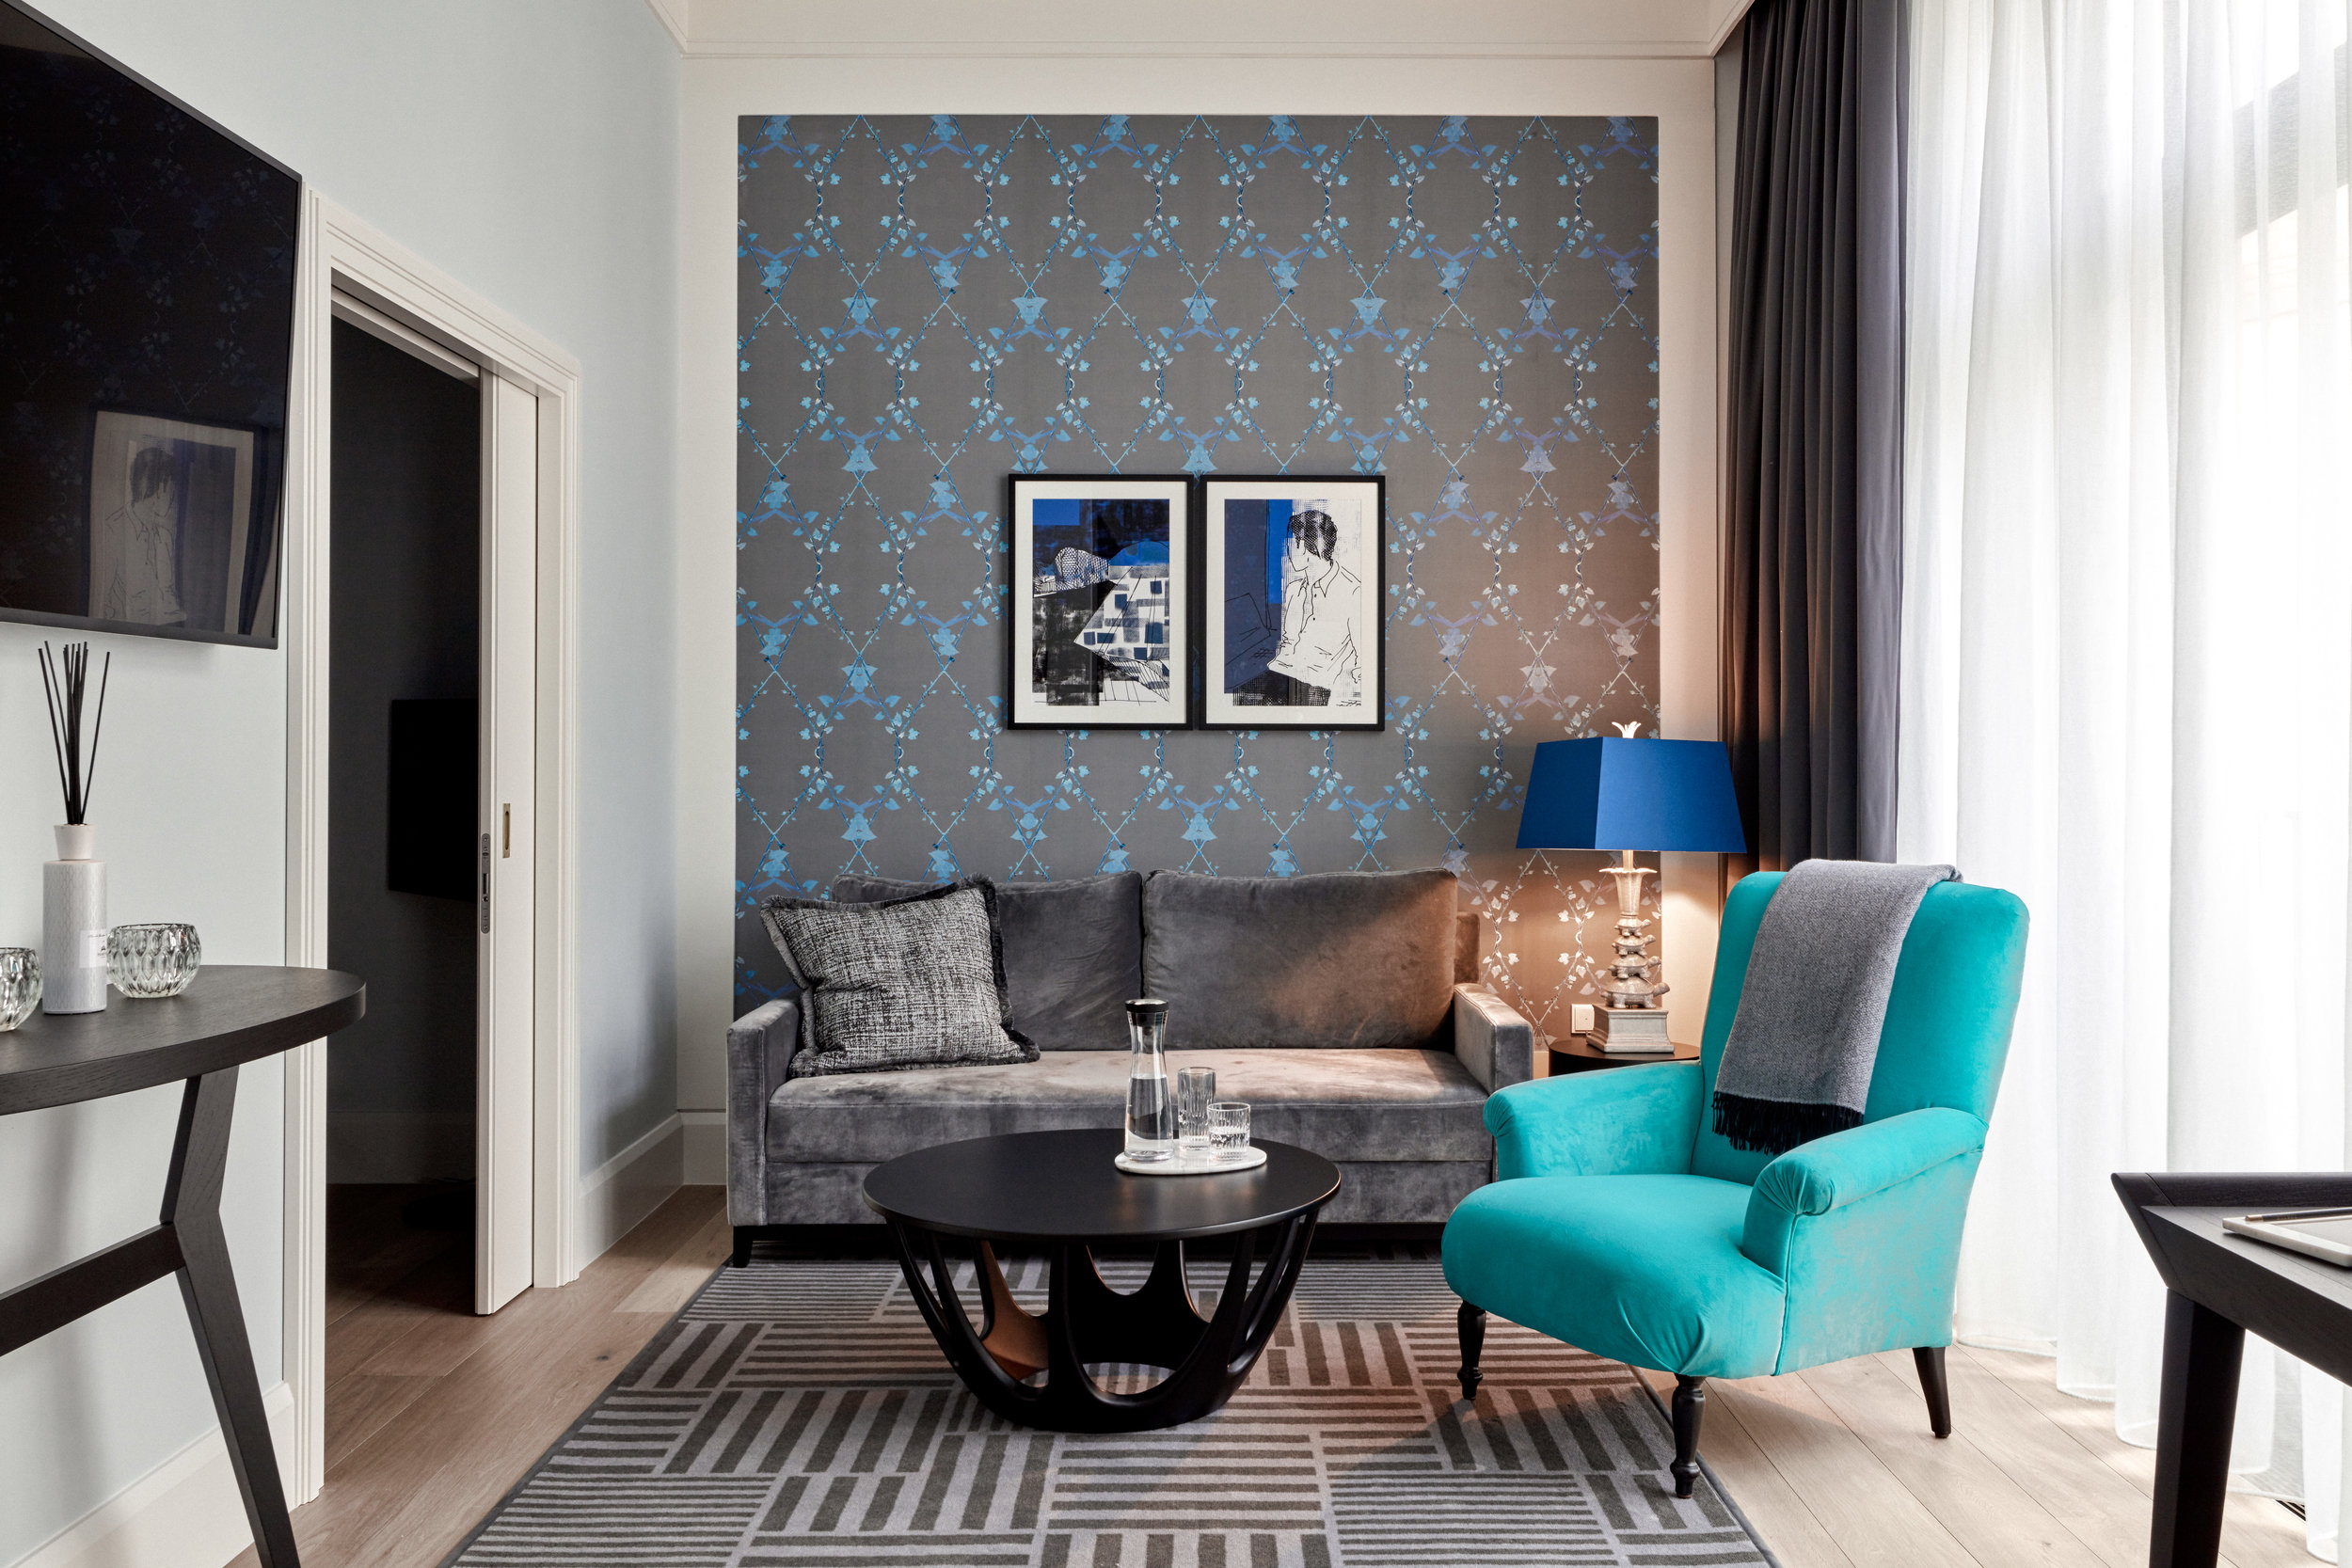 Deluxe room with Morning Glory wallpaper in custom Turquoise